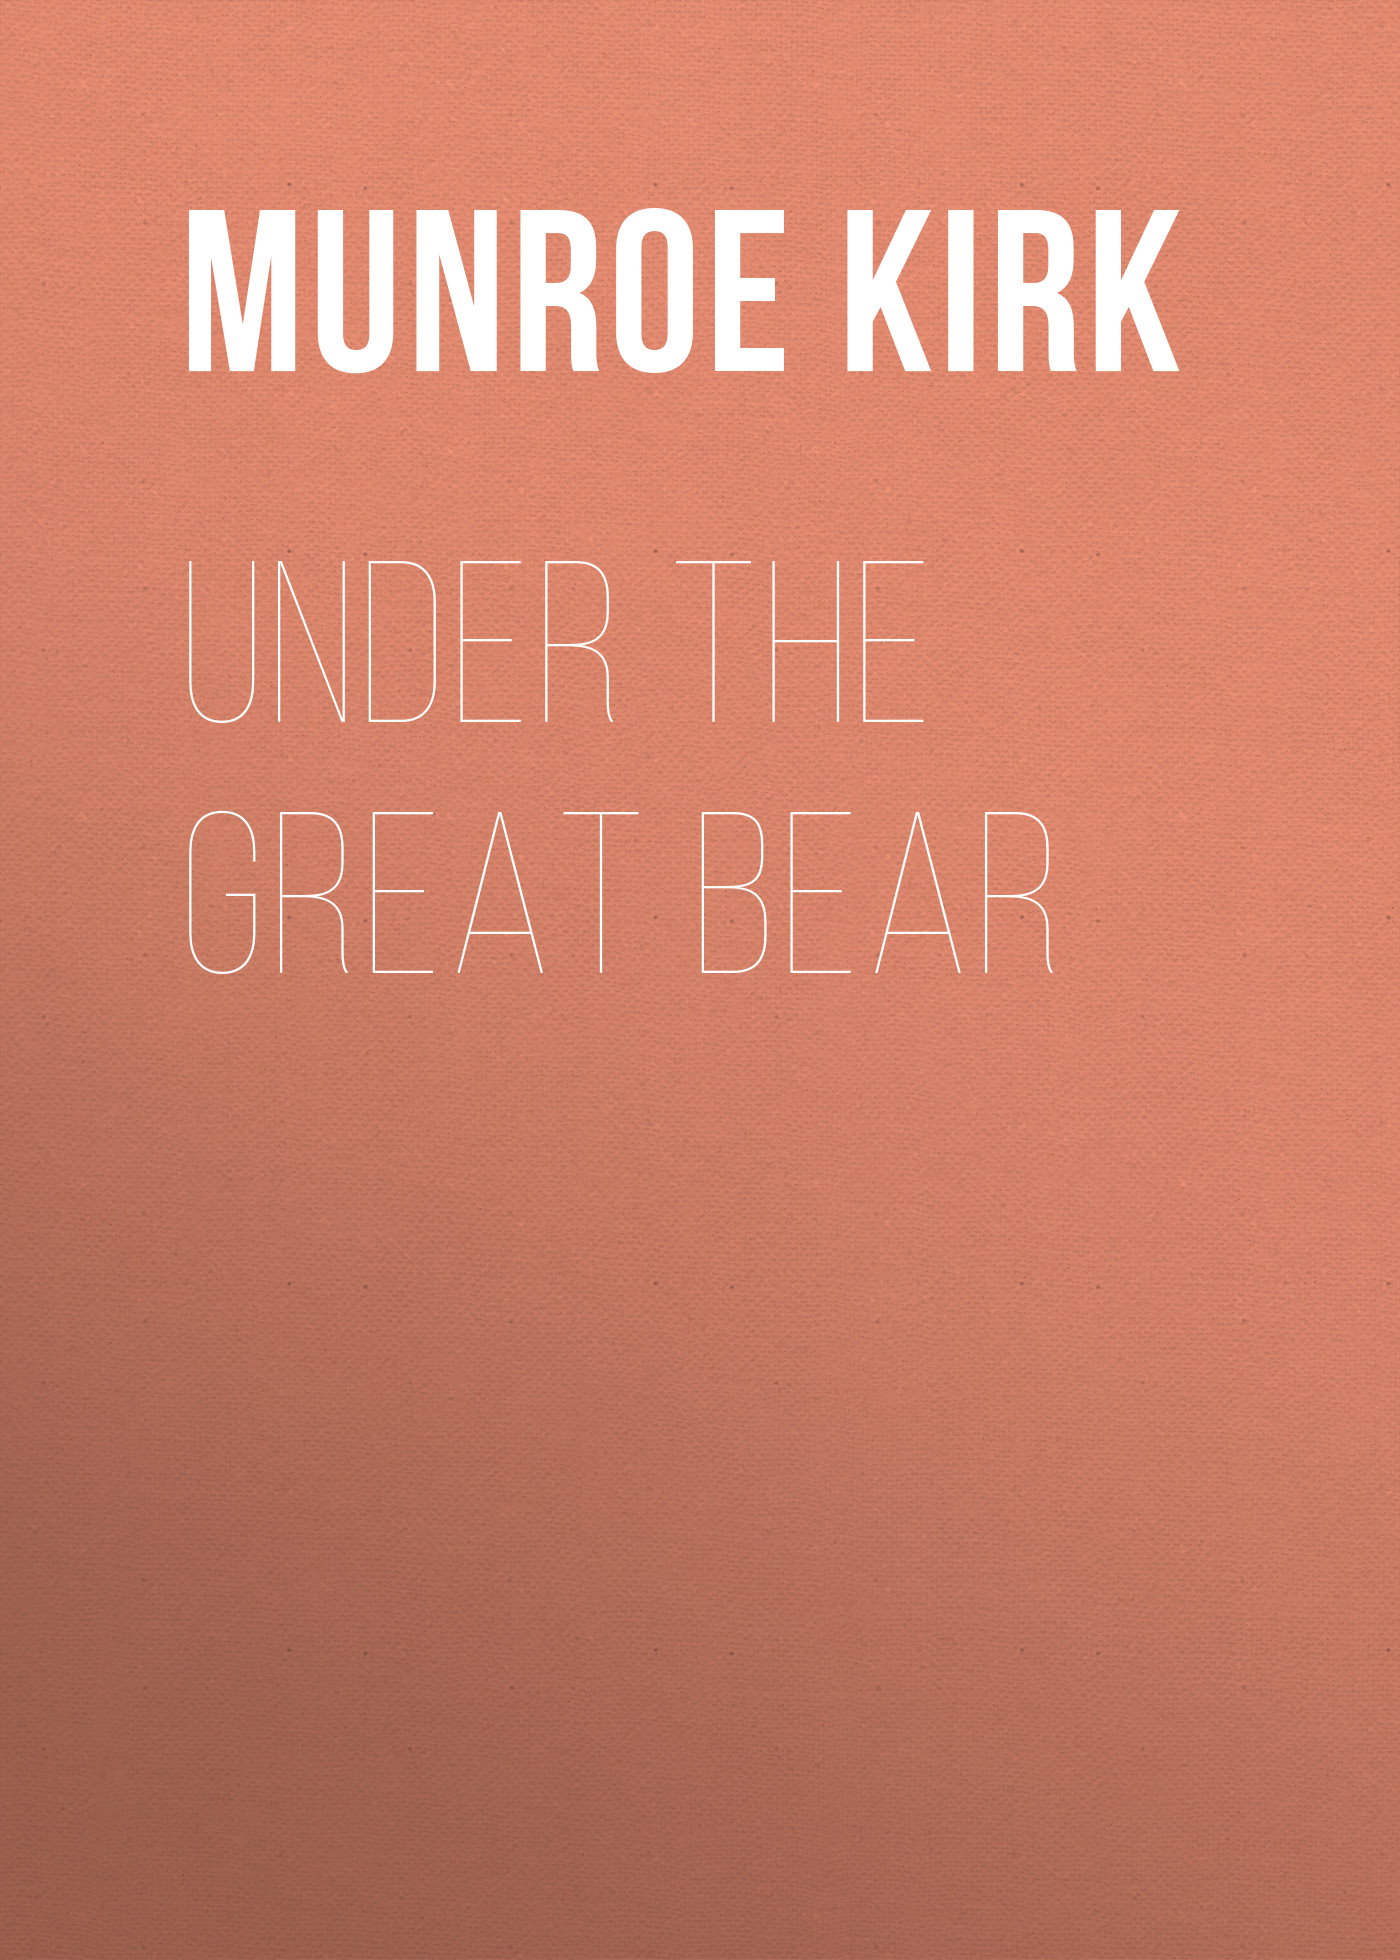 Munroe Kirk Under the Great Bear